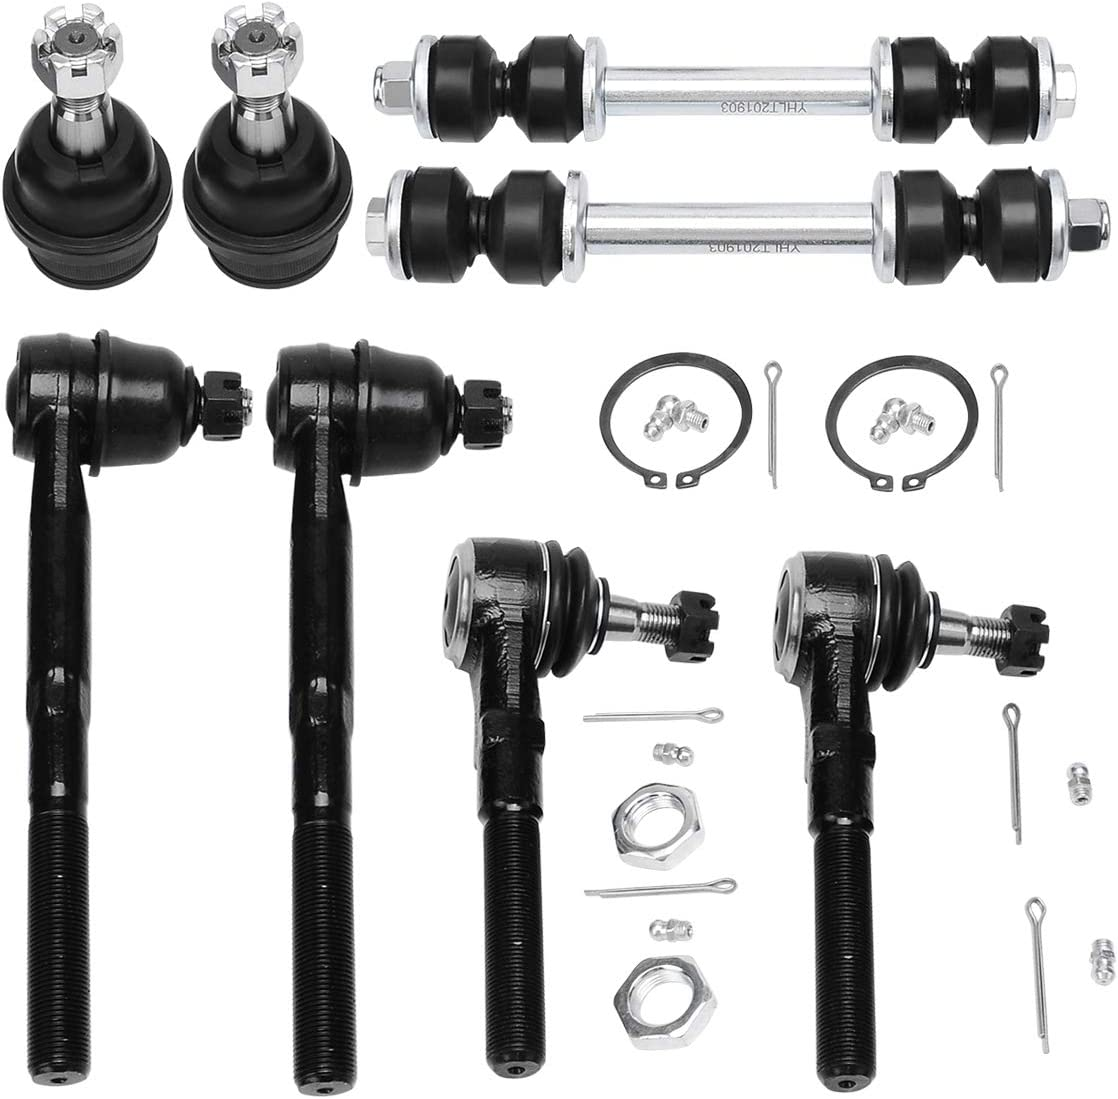 10pcs Front Upper Control Arm Kit for 1997-2004 Ford F-250 F-150 Heritage Expedition 1998-2002 Lincoln Blackwood Navigator